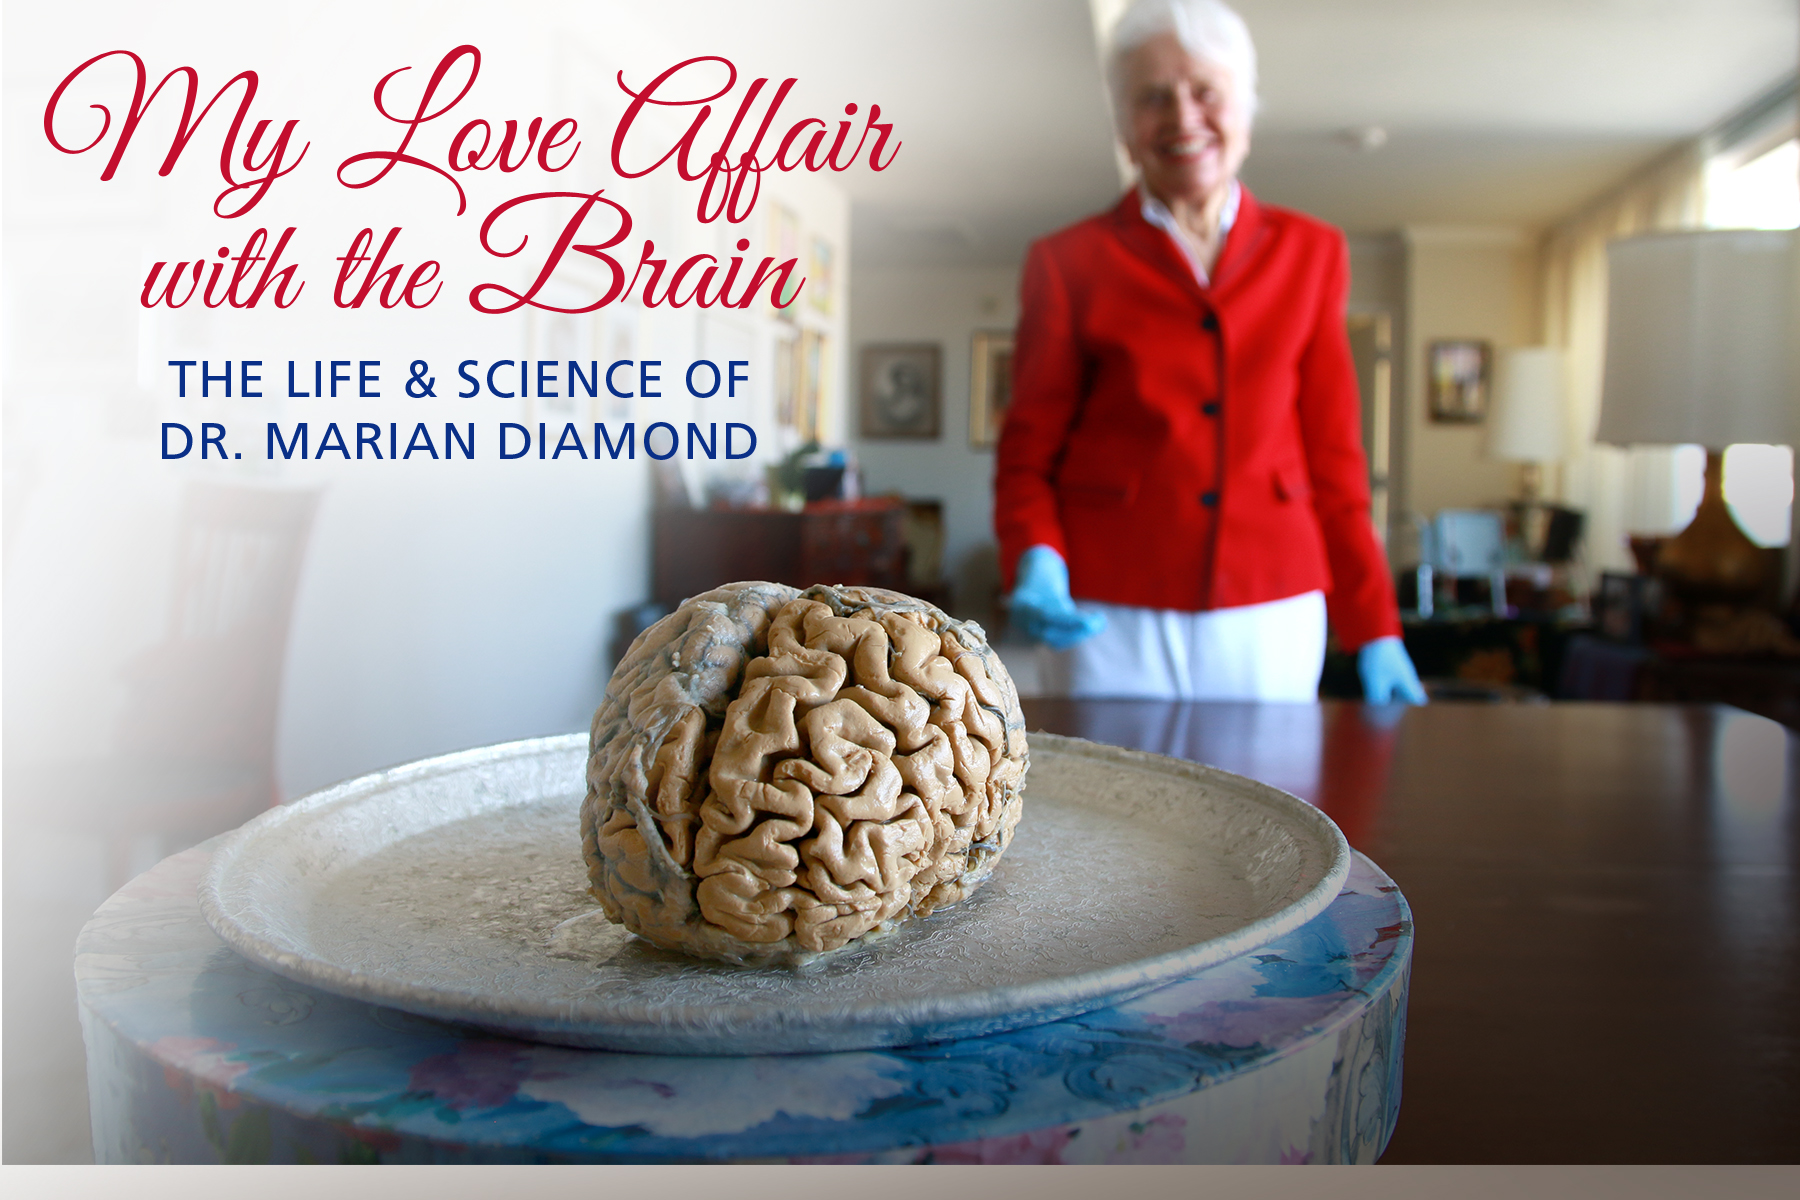 Brain on a plate, My Love Affair with the Brain: The Life and Science of Dr. Marian Diamond